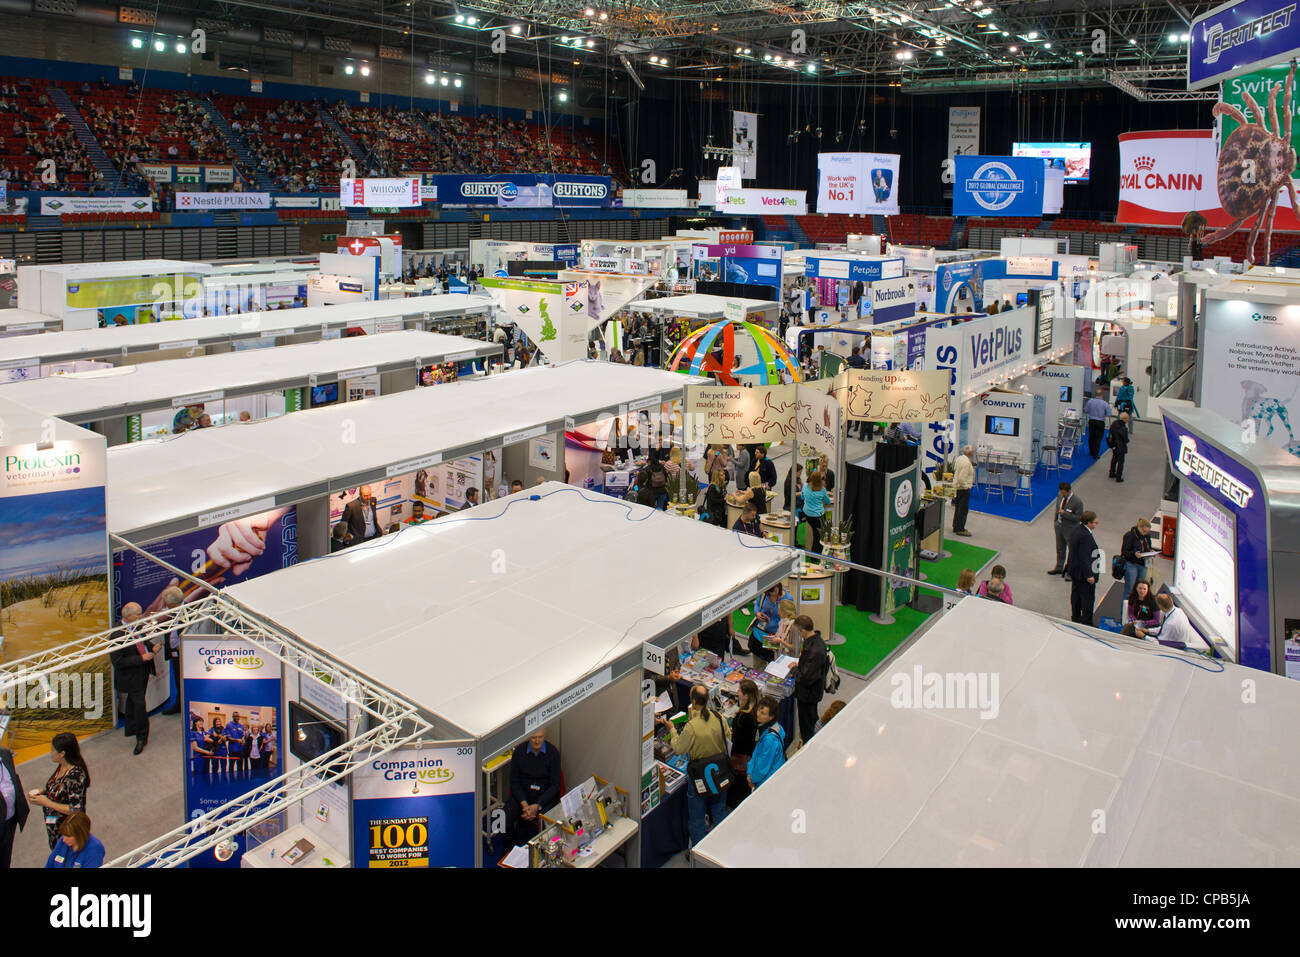 The National Indoor Arena (NIA) hosting an exhibition. - Stock Image